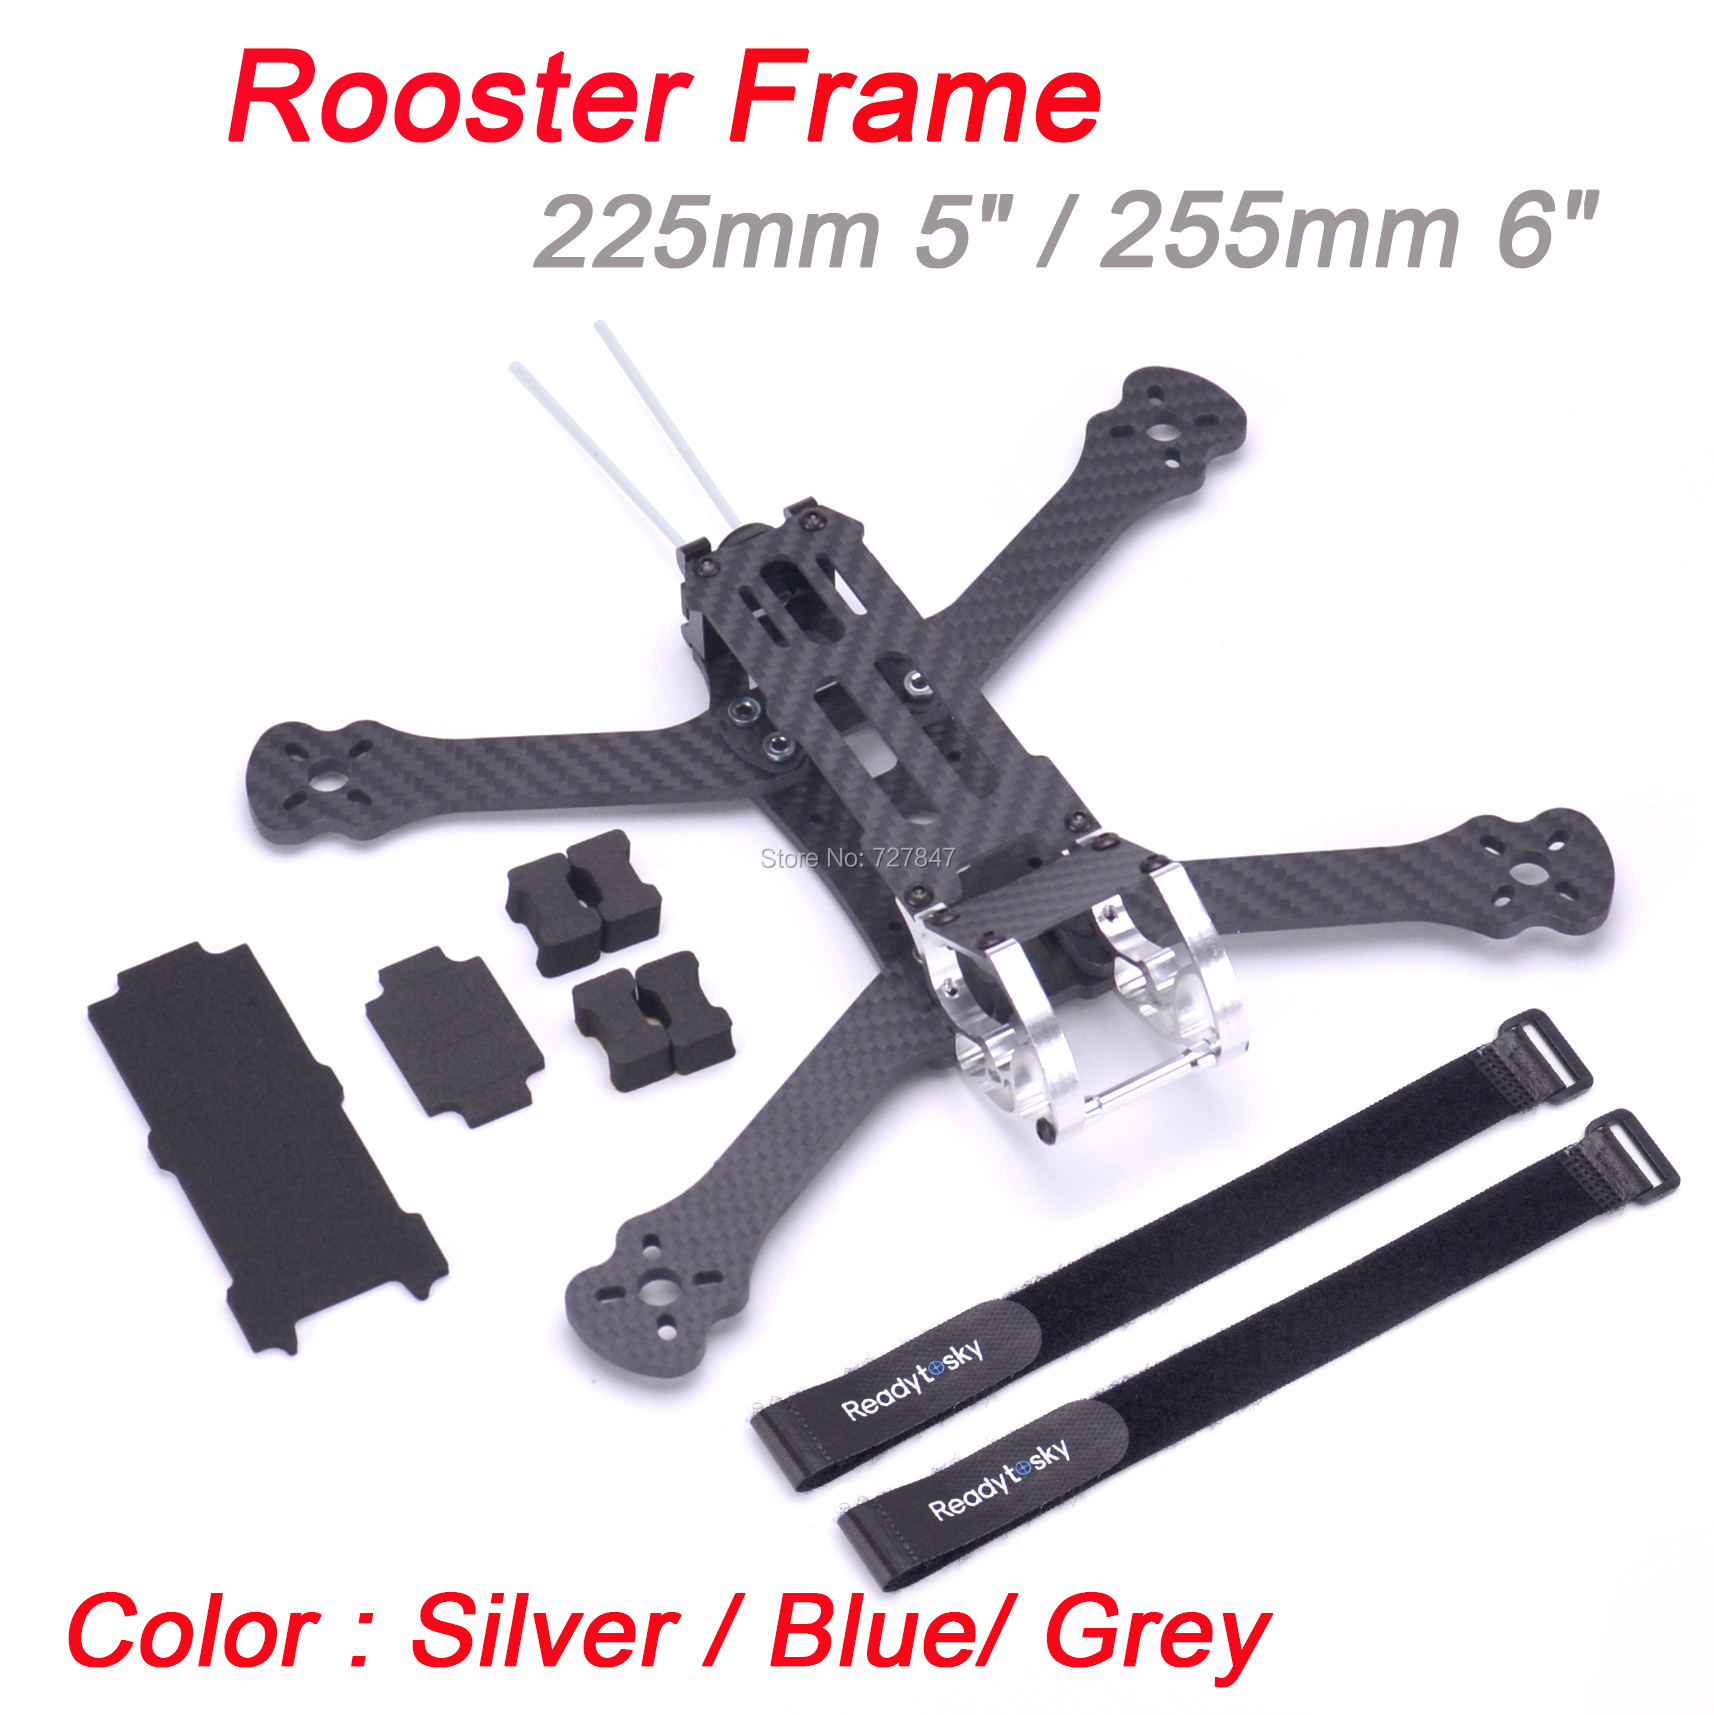 Rooster 5inch 230 225mm 6inch 255mm FPV Racing Drone Quadcopter Frame FPV Freestyle Frame For Chameleon